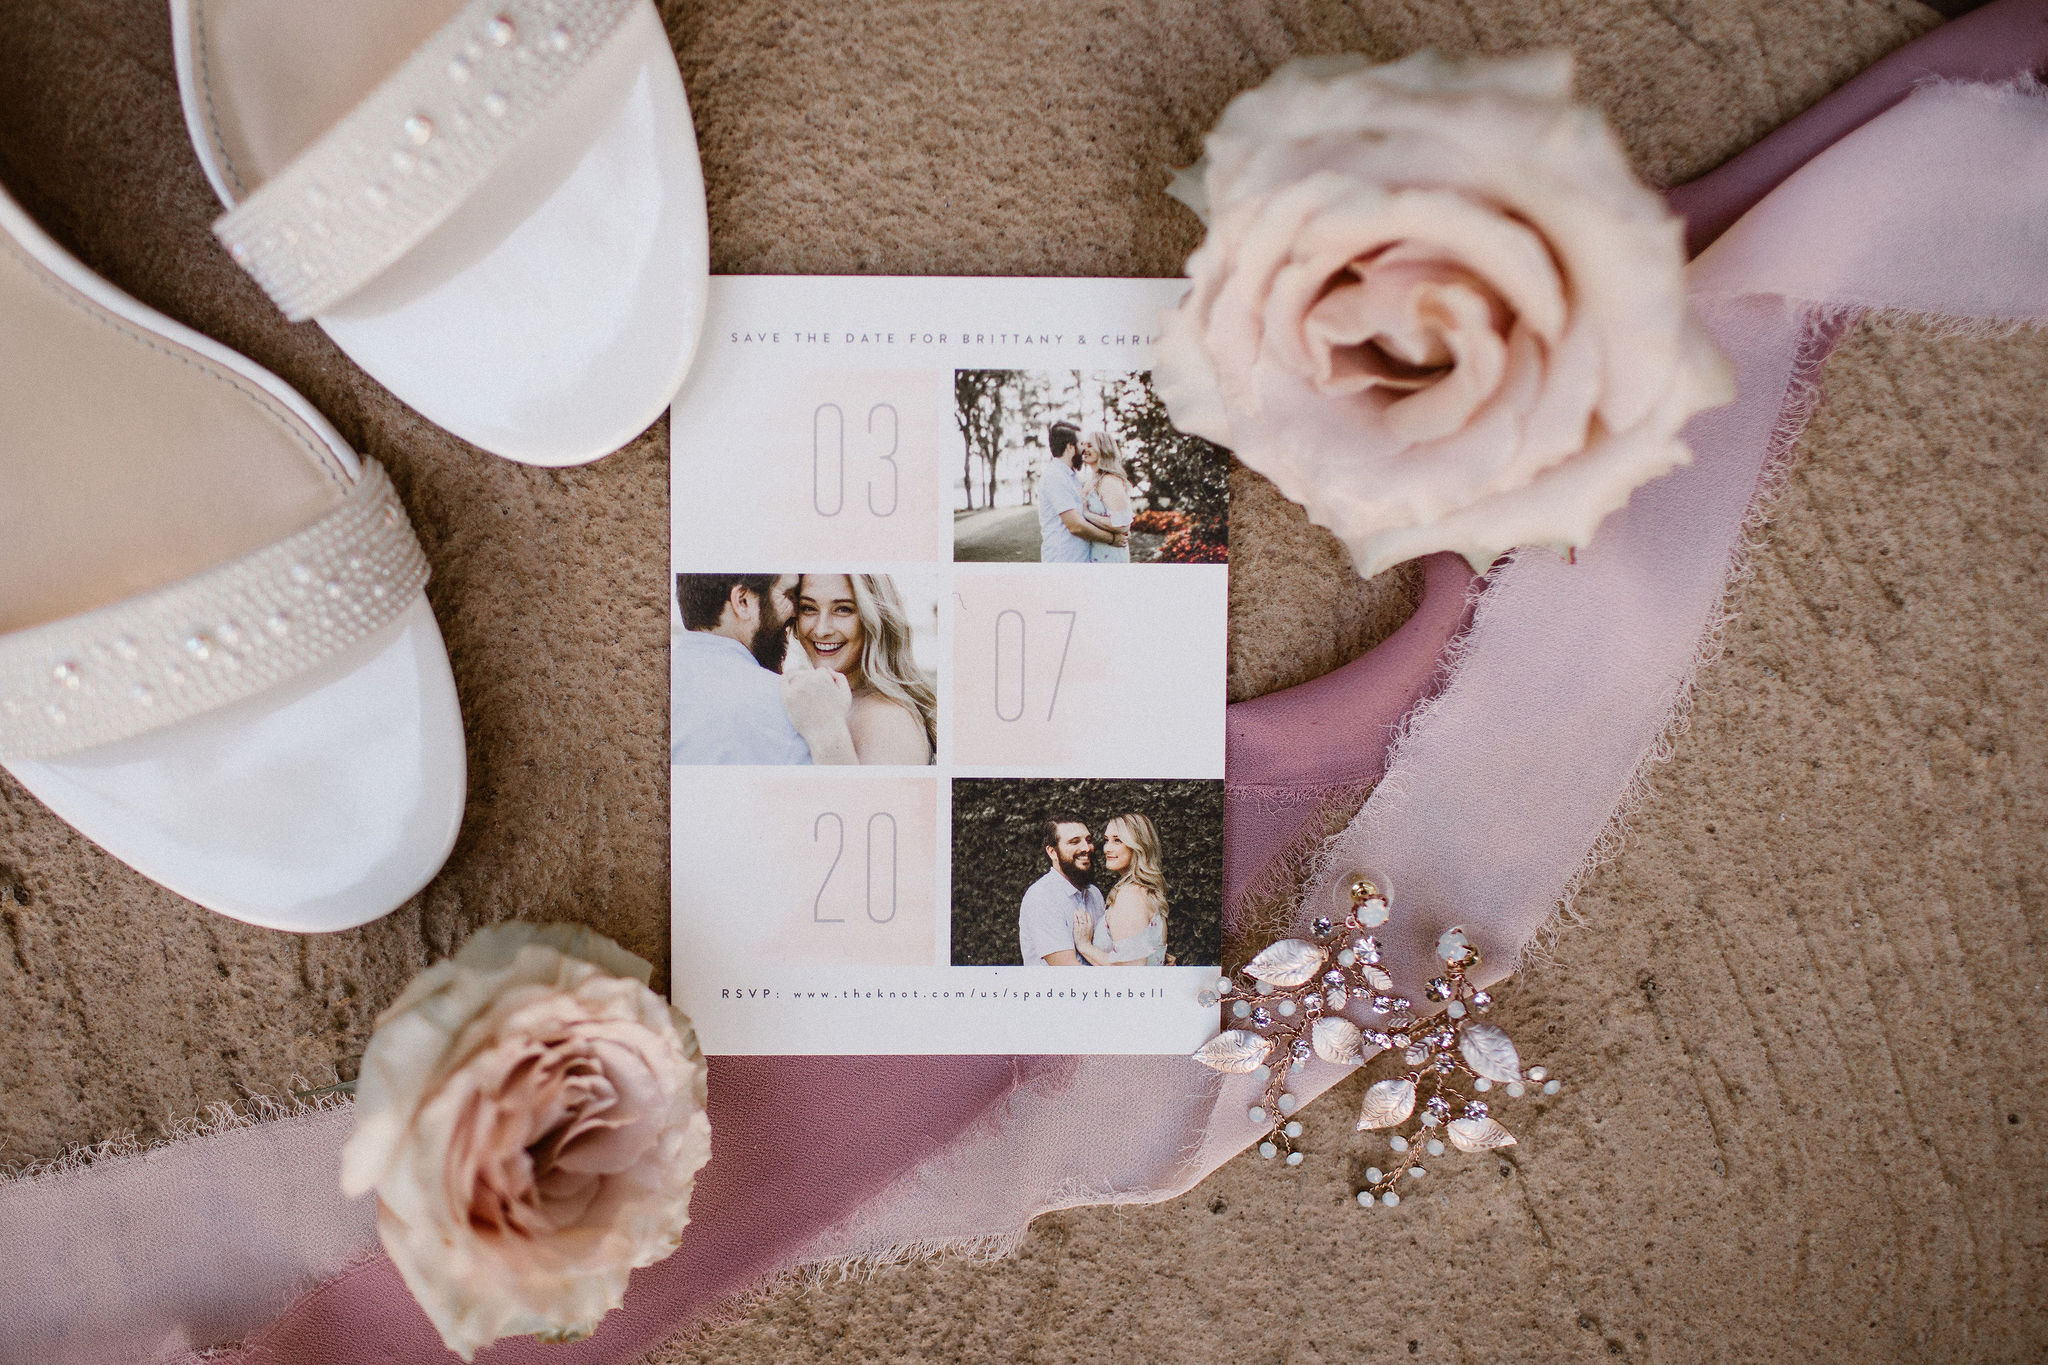 couples detail shot with invitation shoes and hair piece for romantic wedding day with mauve ribbons in background